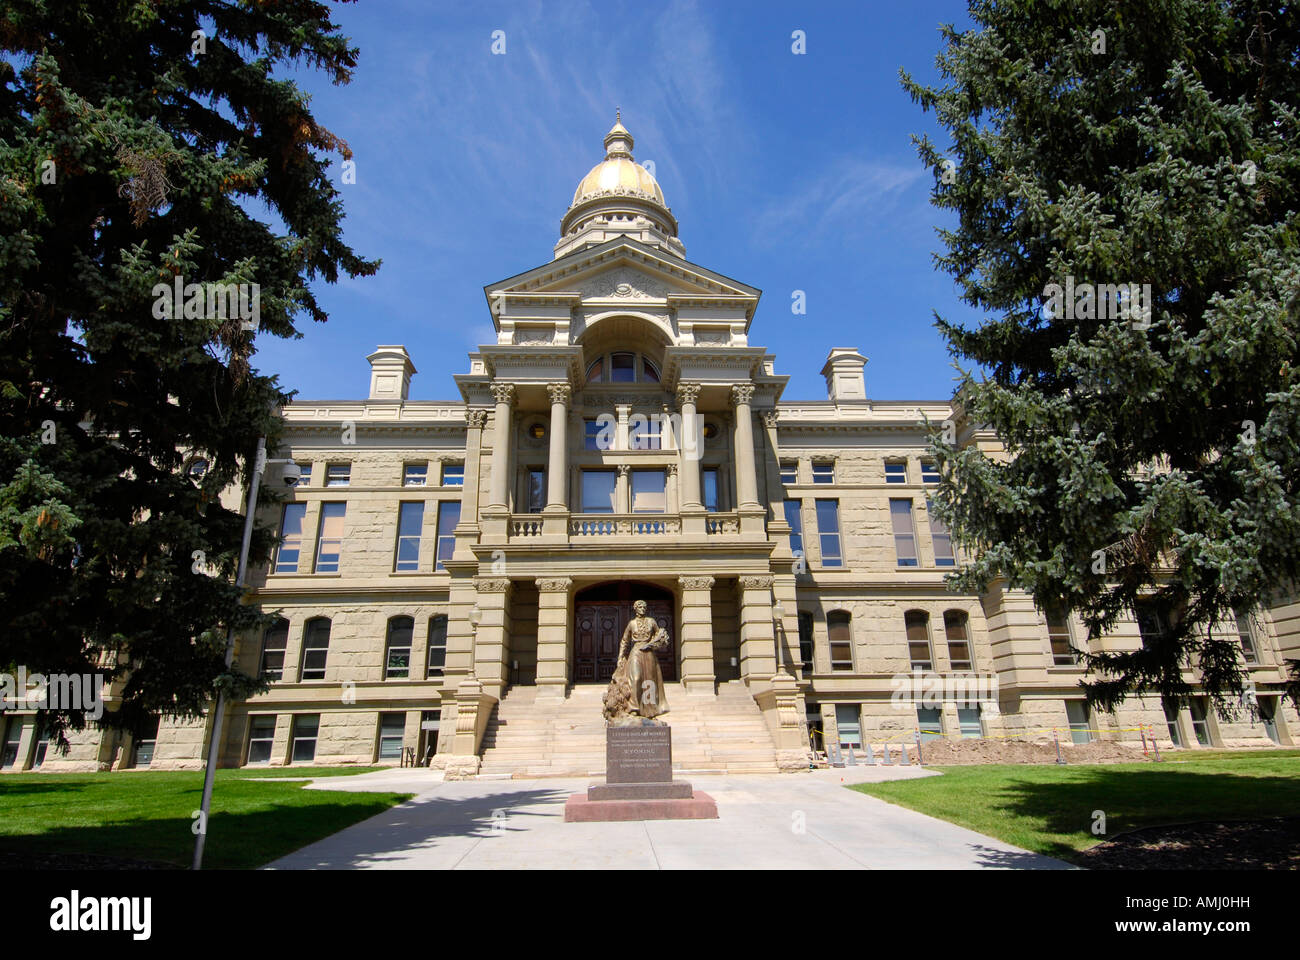 Cheyenne Wyoming Stock Photos & Cheyenne Wyoming Stock